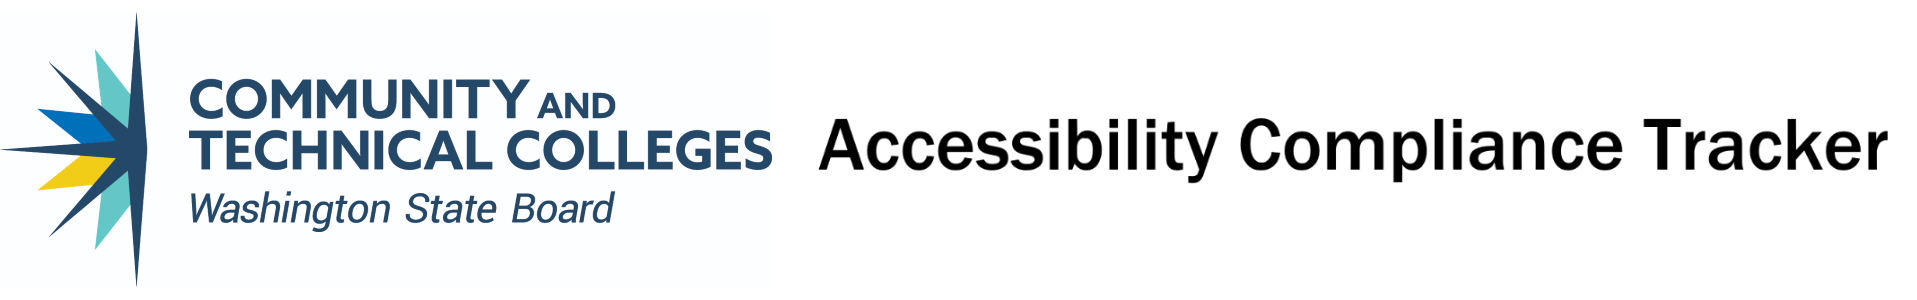 Accessibility Compliance Tracker logo